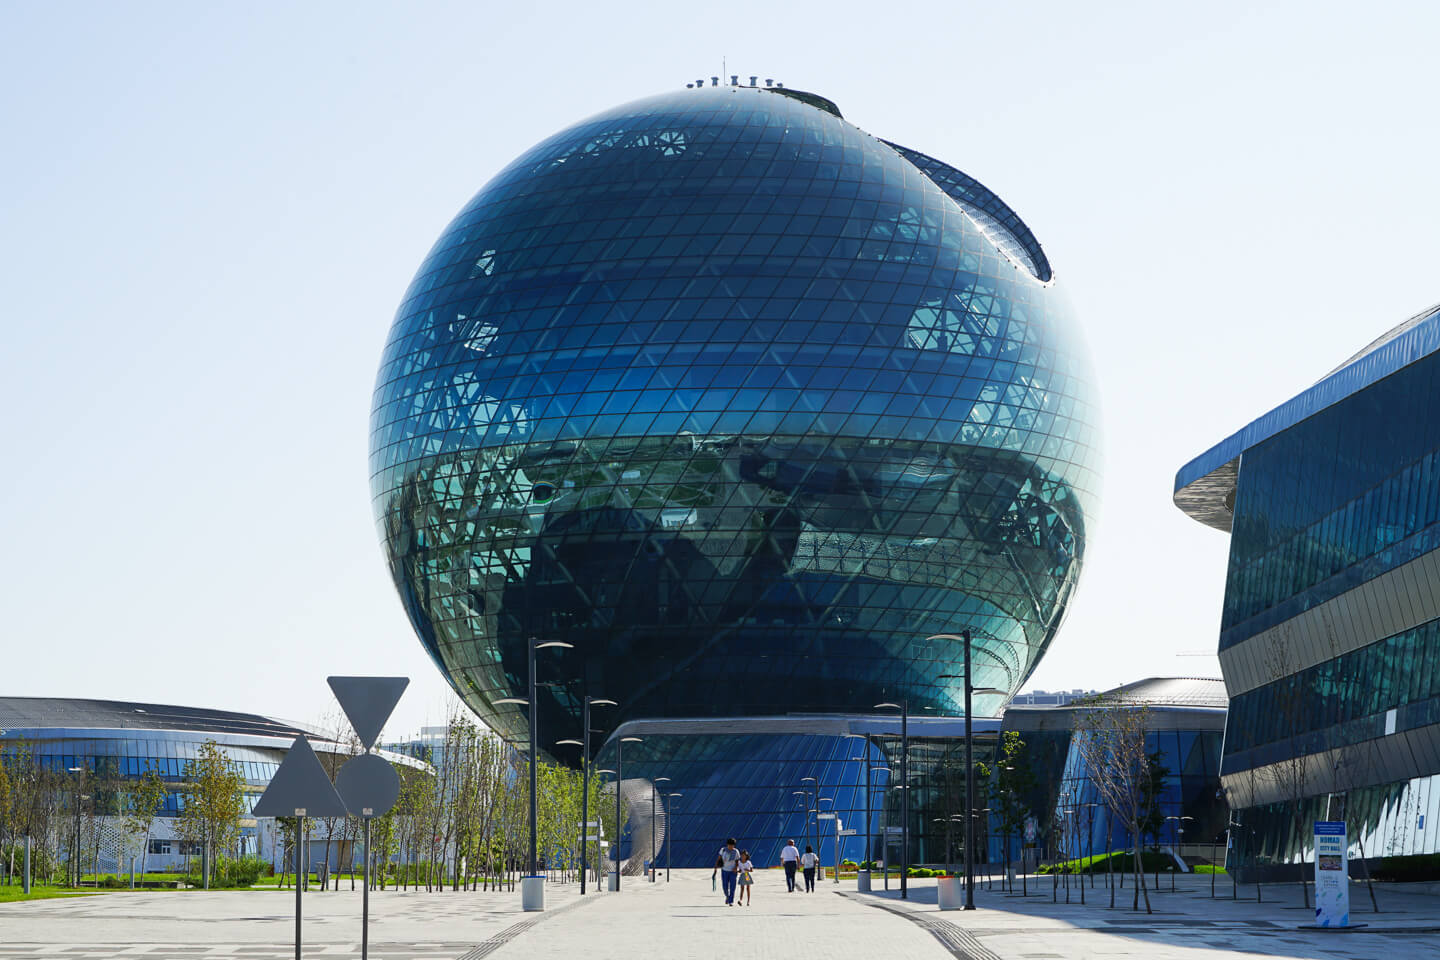 Kazakhstan expo museum in form of glass ball in Nur Sultan